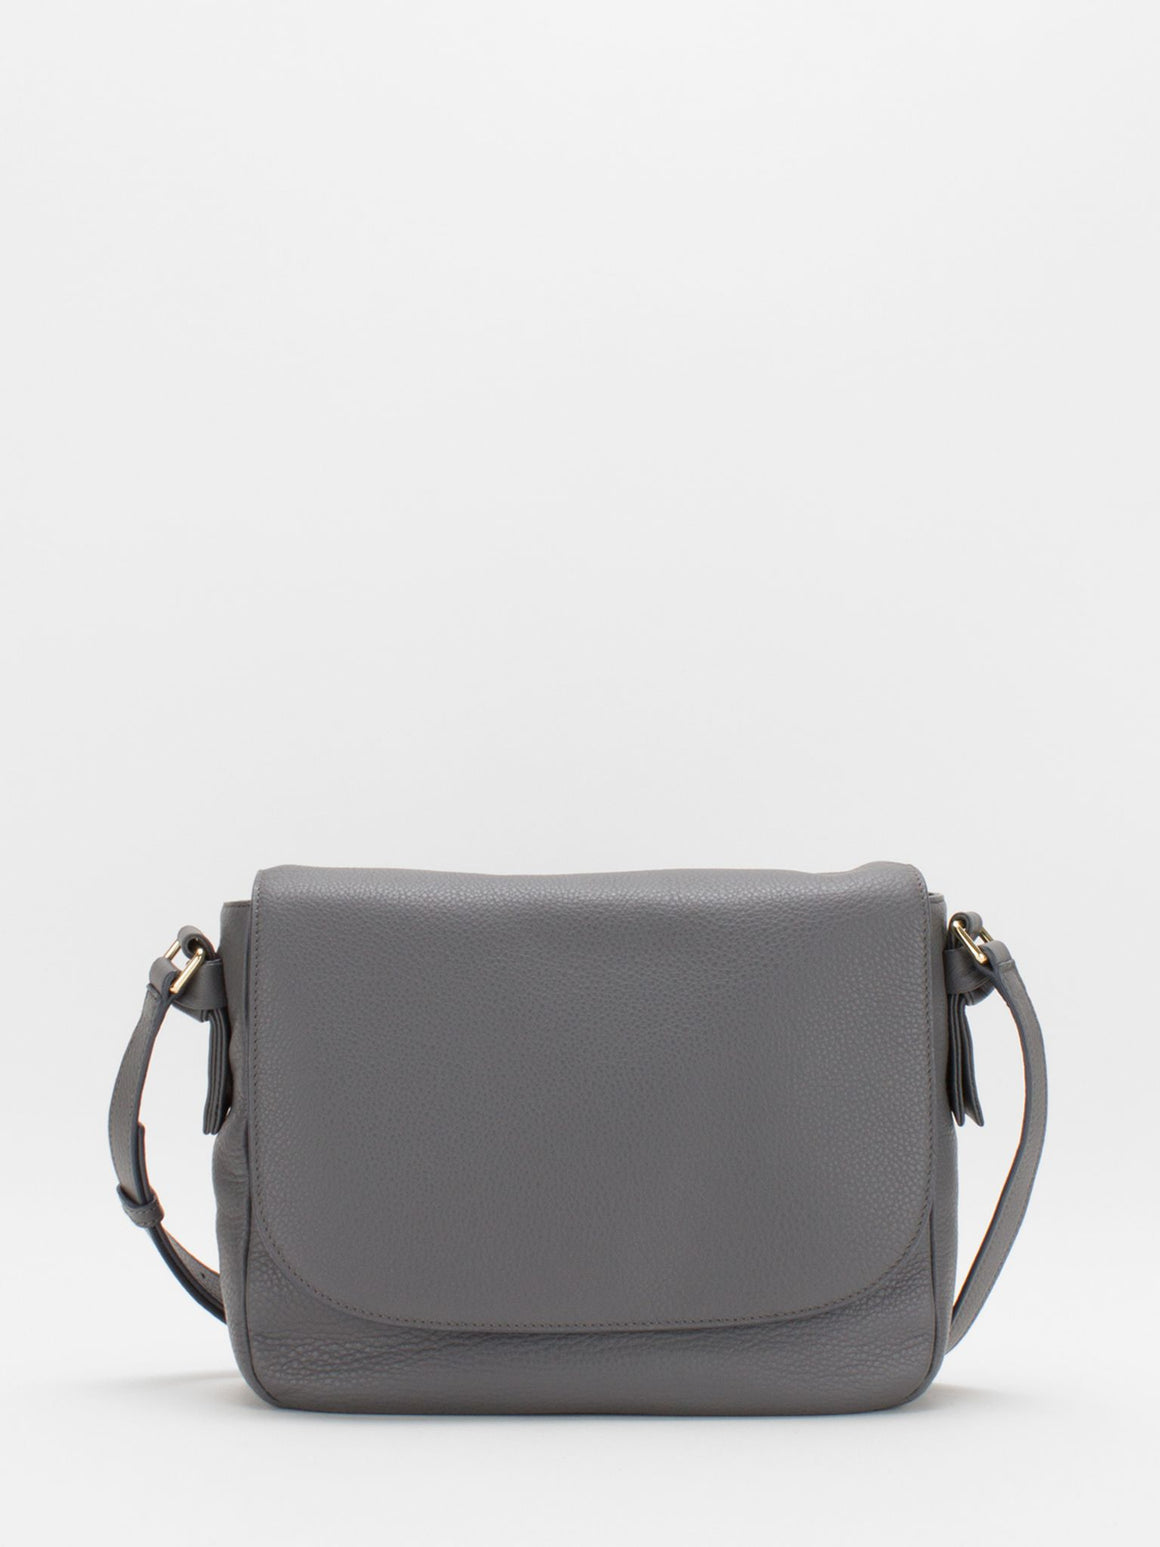 Belle Leather Saddle Bag - Grey